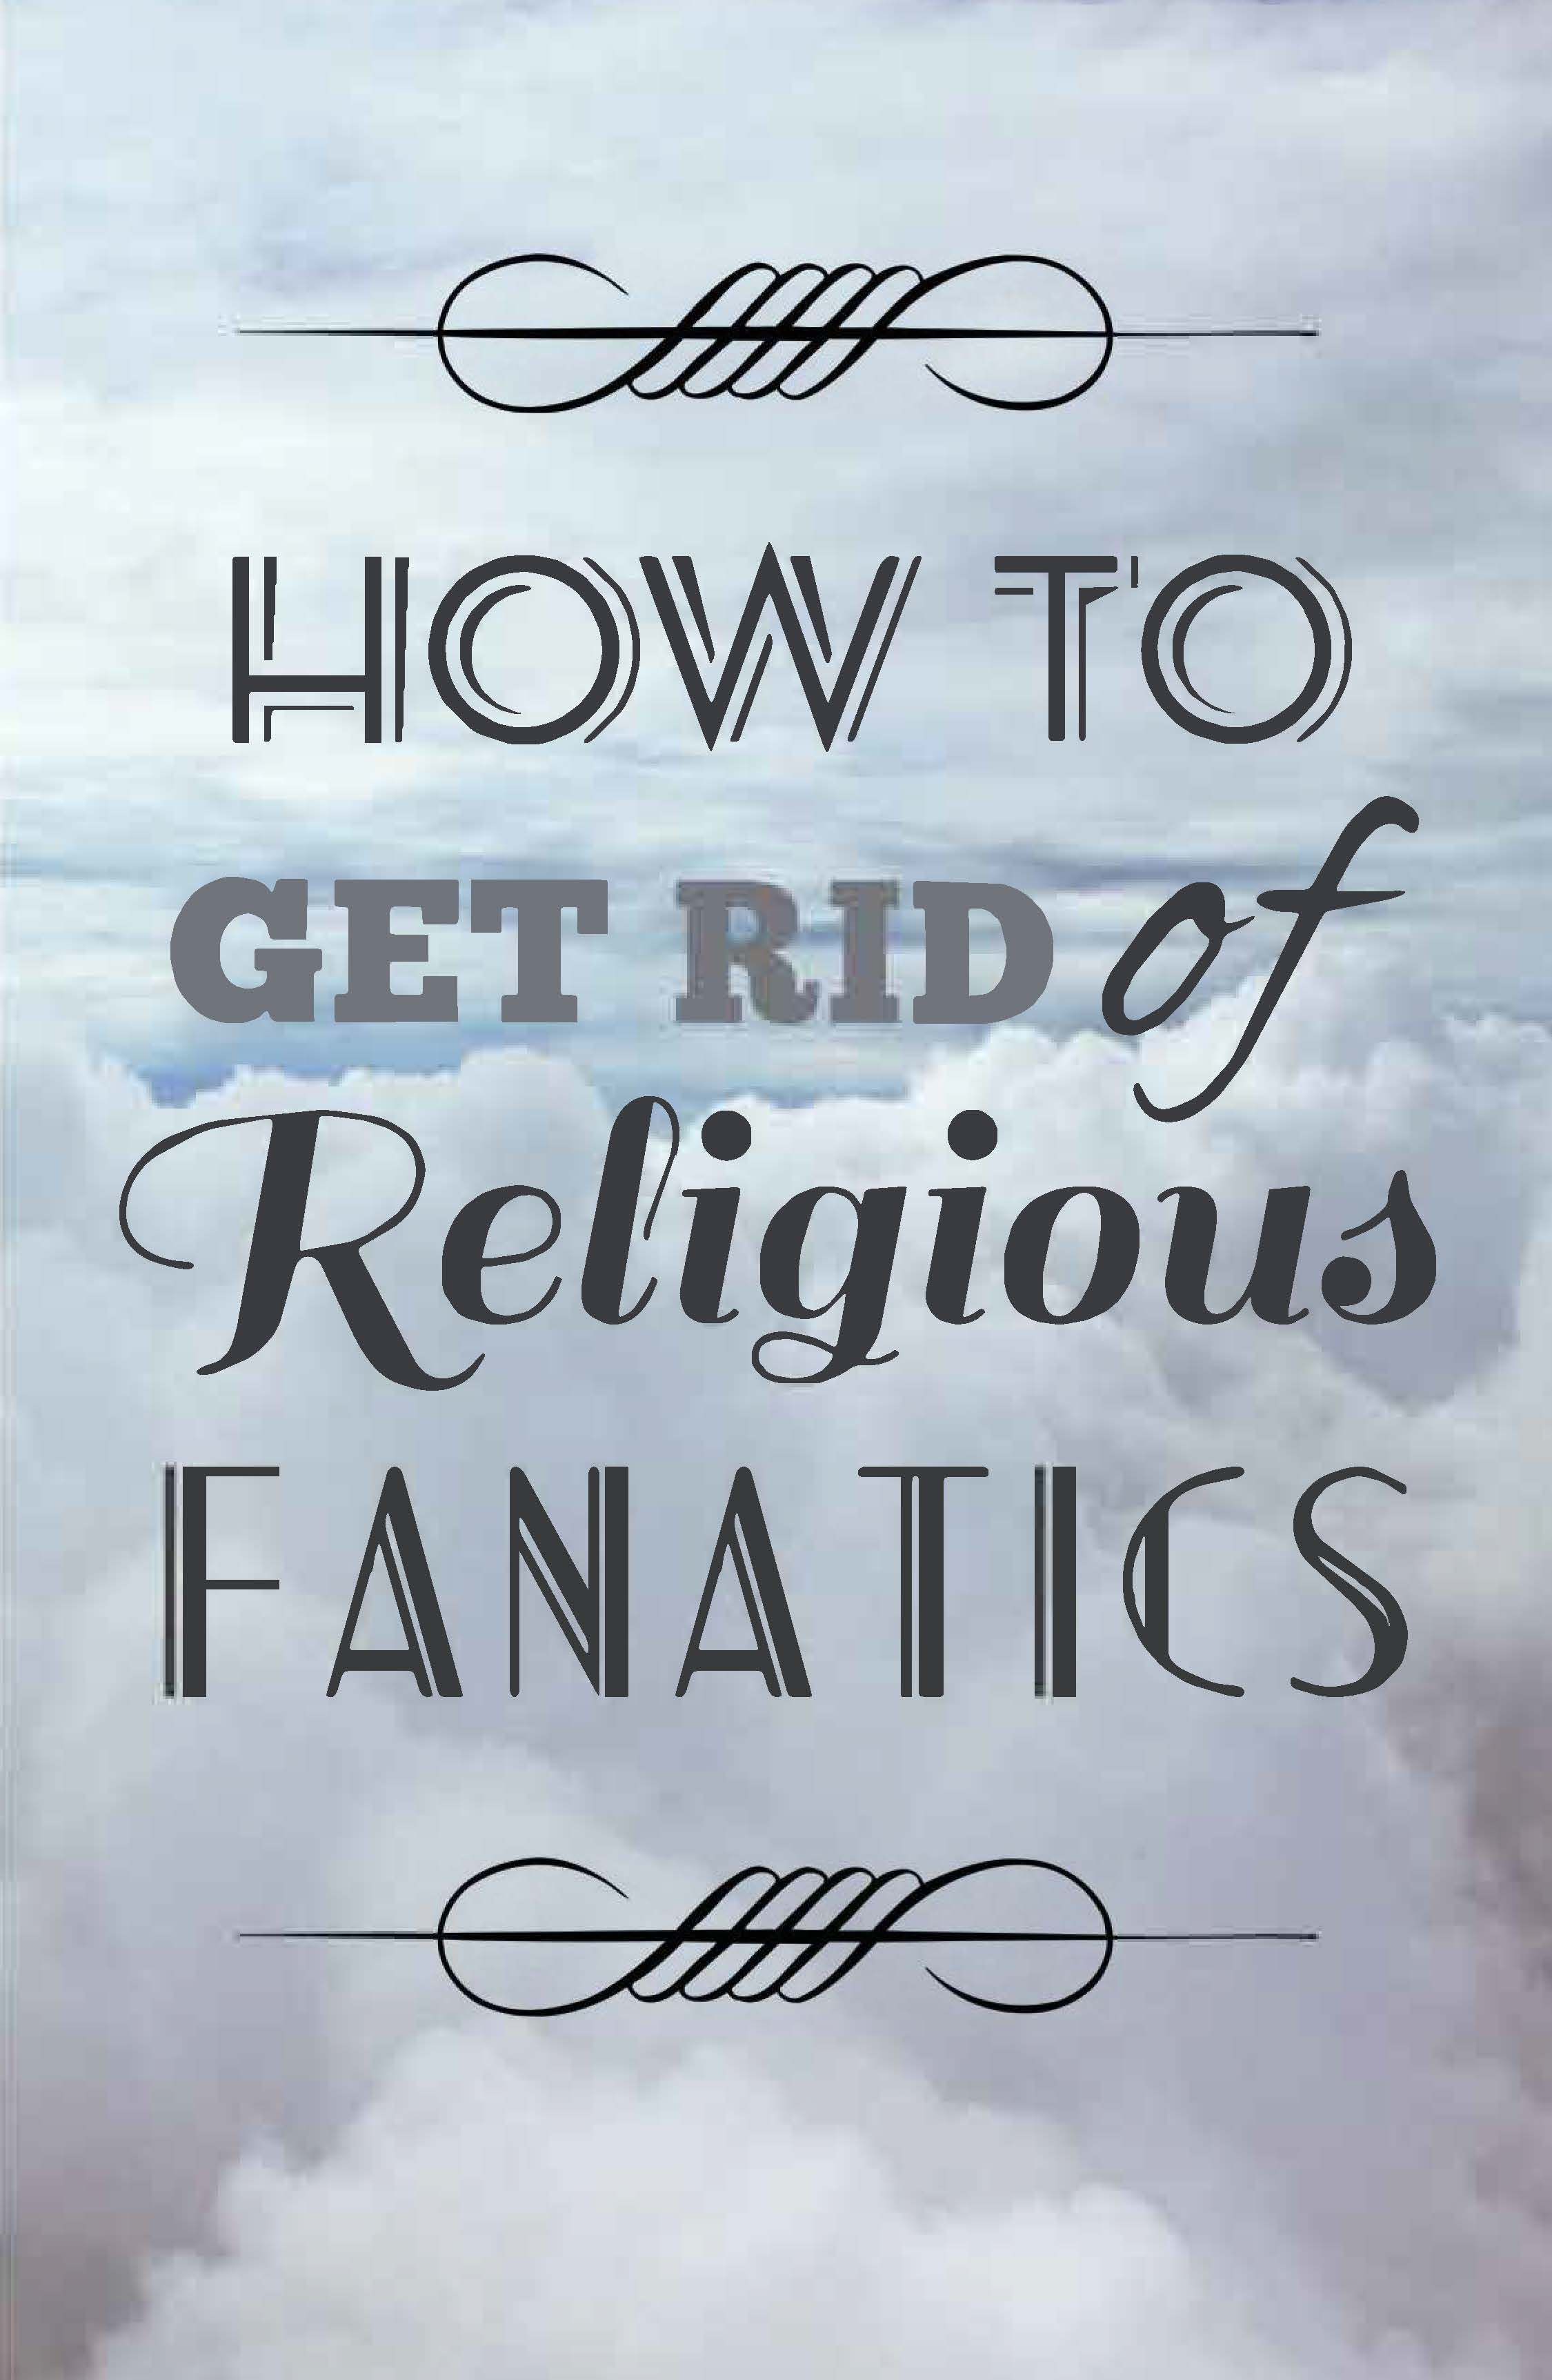 How to Get Rid of Religious Fanatics 060919 page 1